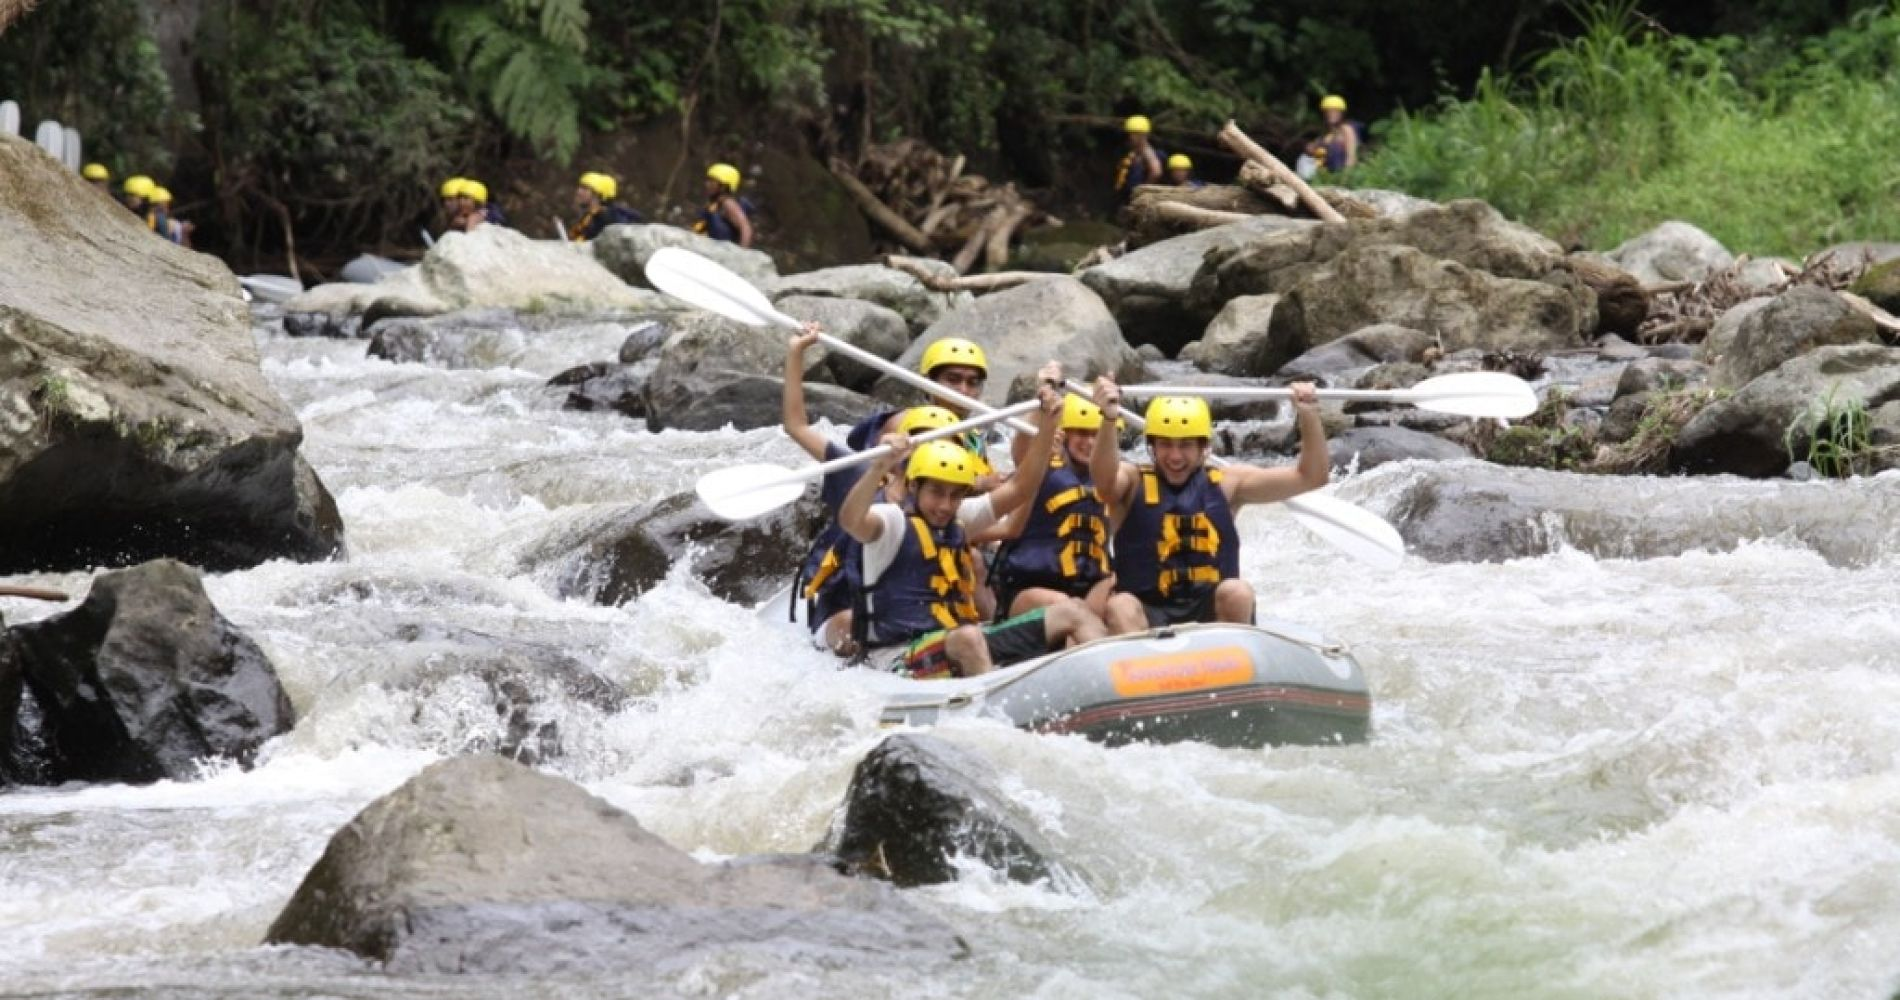 Extreme White Water Rafting in Indonesia